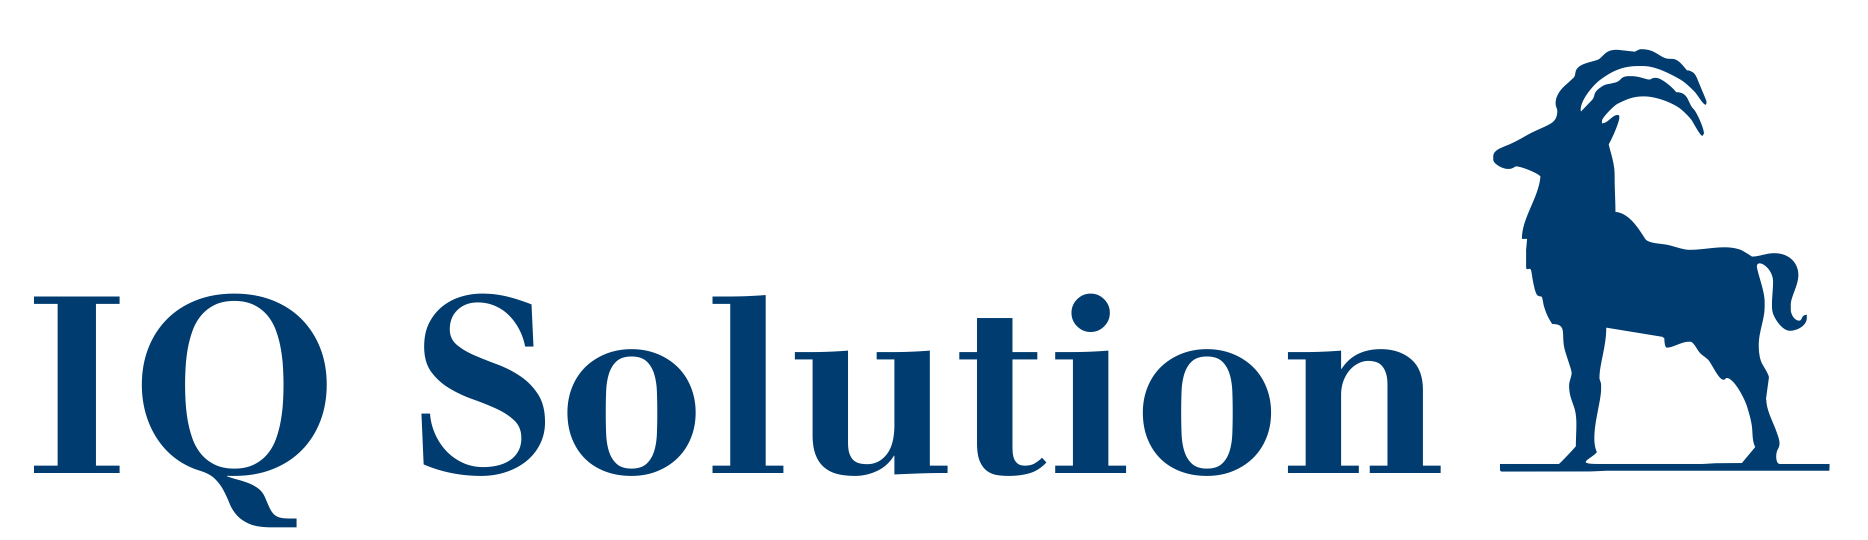 IQ Solution GmbH